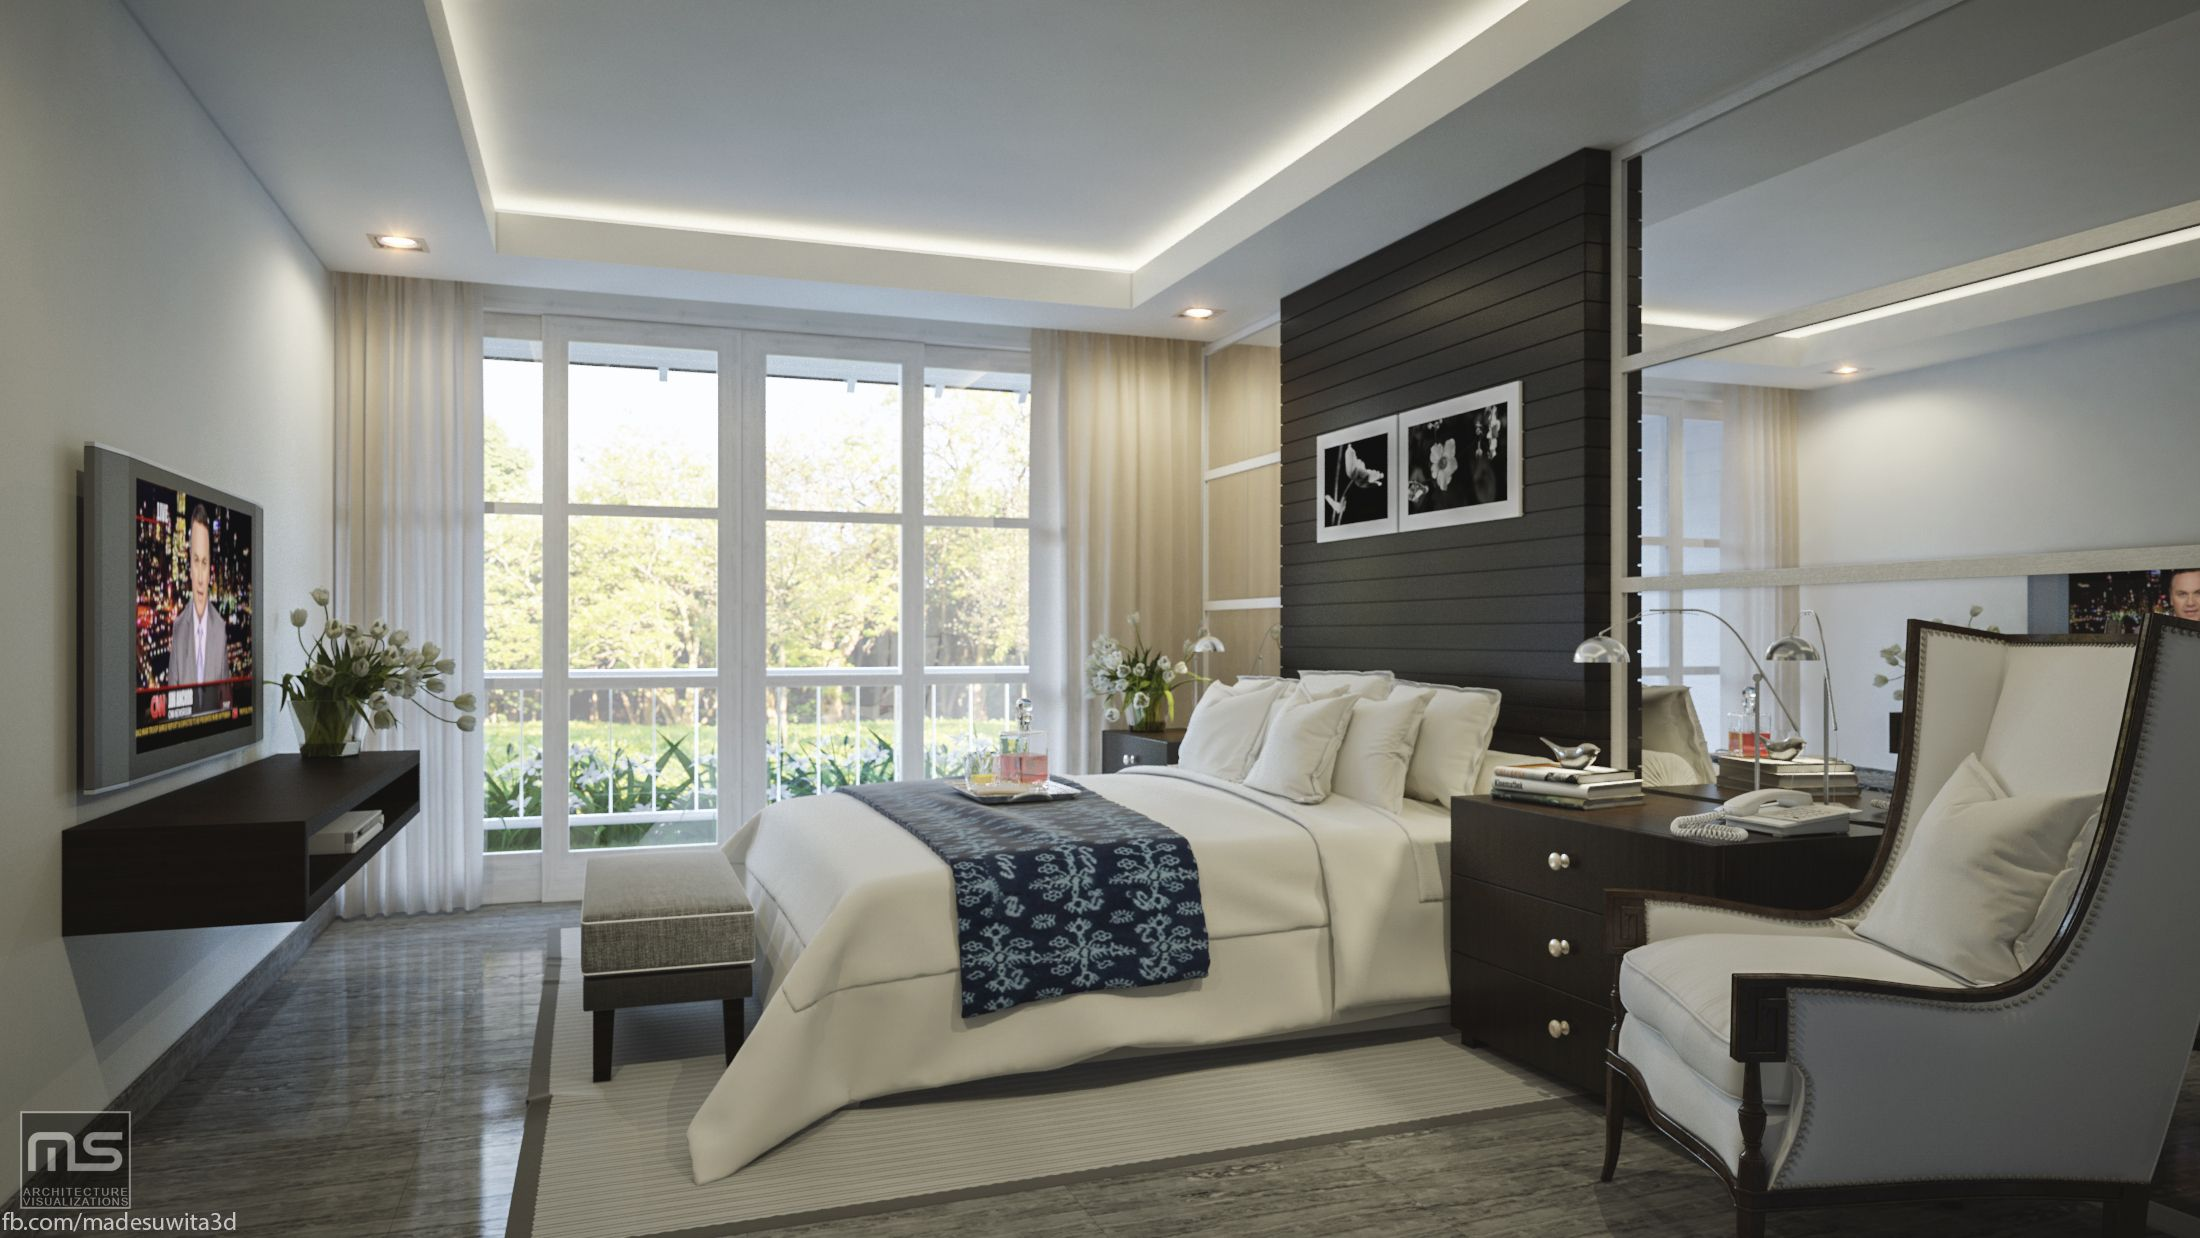 Mix Interior Renderings 3d Model Apartment Bedroom Interior Rendering Done By 3ds Max Vray Ps Modern Bedroom Interior Bedroom Interior Beauty Bedrooms